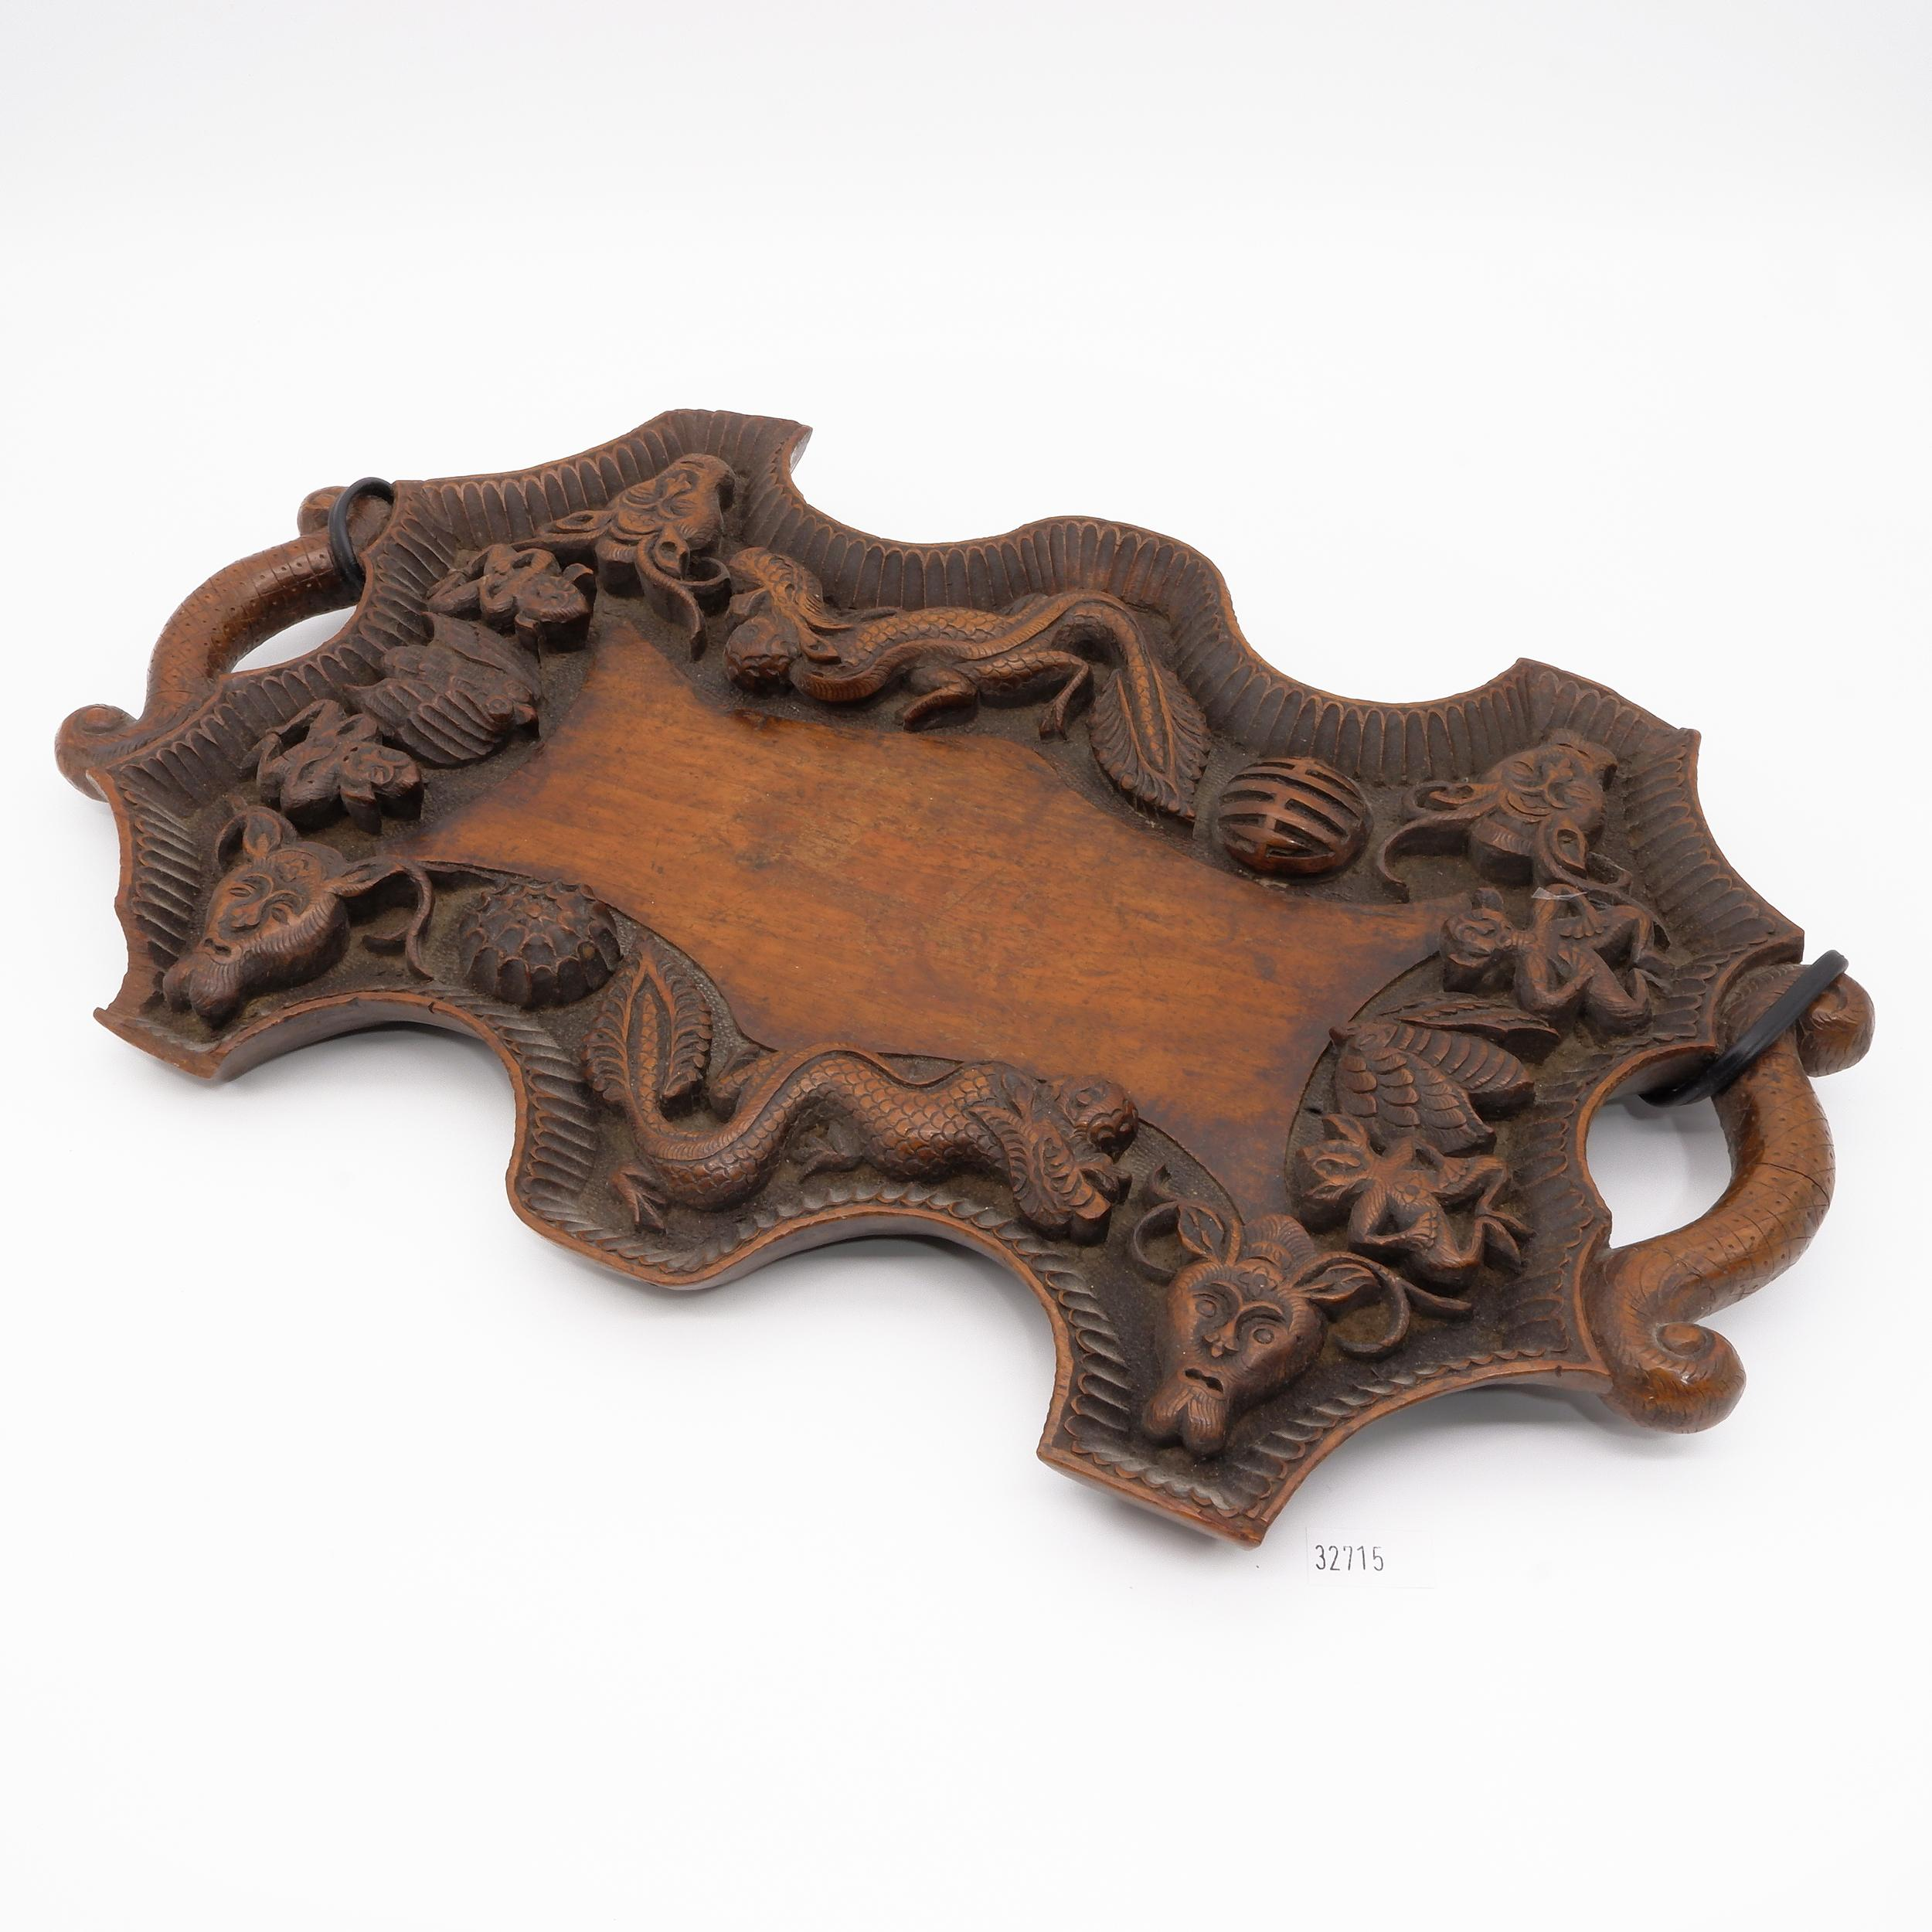 'South Chinese or Burmese Teak Tray Relief Carved with Dragons and Auspicious Symbols, Circa 1900'